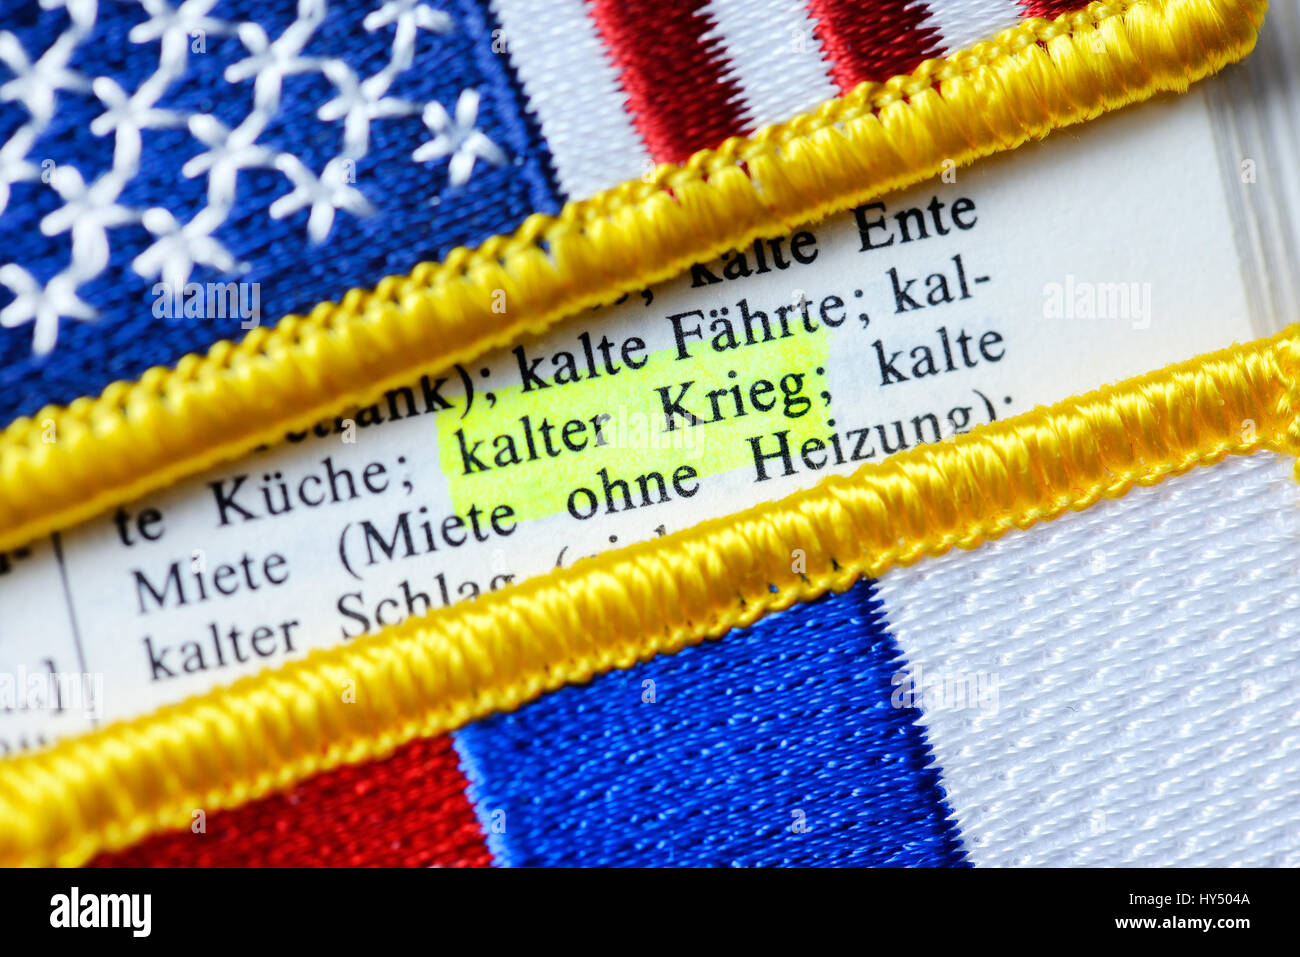 Flags of the USA and Russia and dictionary, cold war, Fahnen von USA und Russland und Woerterbuch, Kalter Krieg - Stock Image